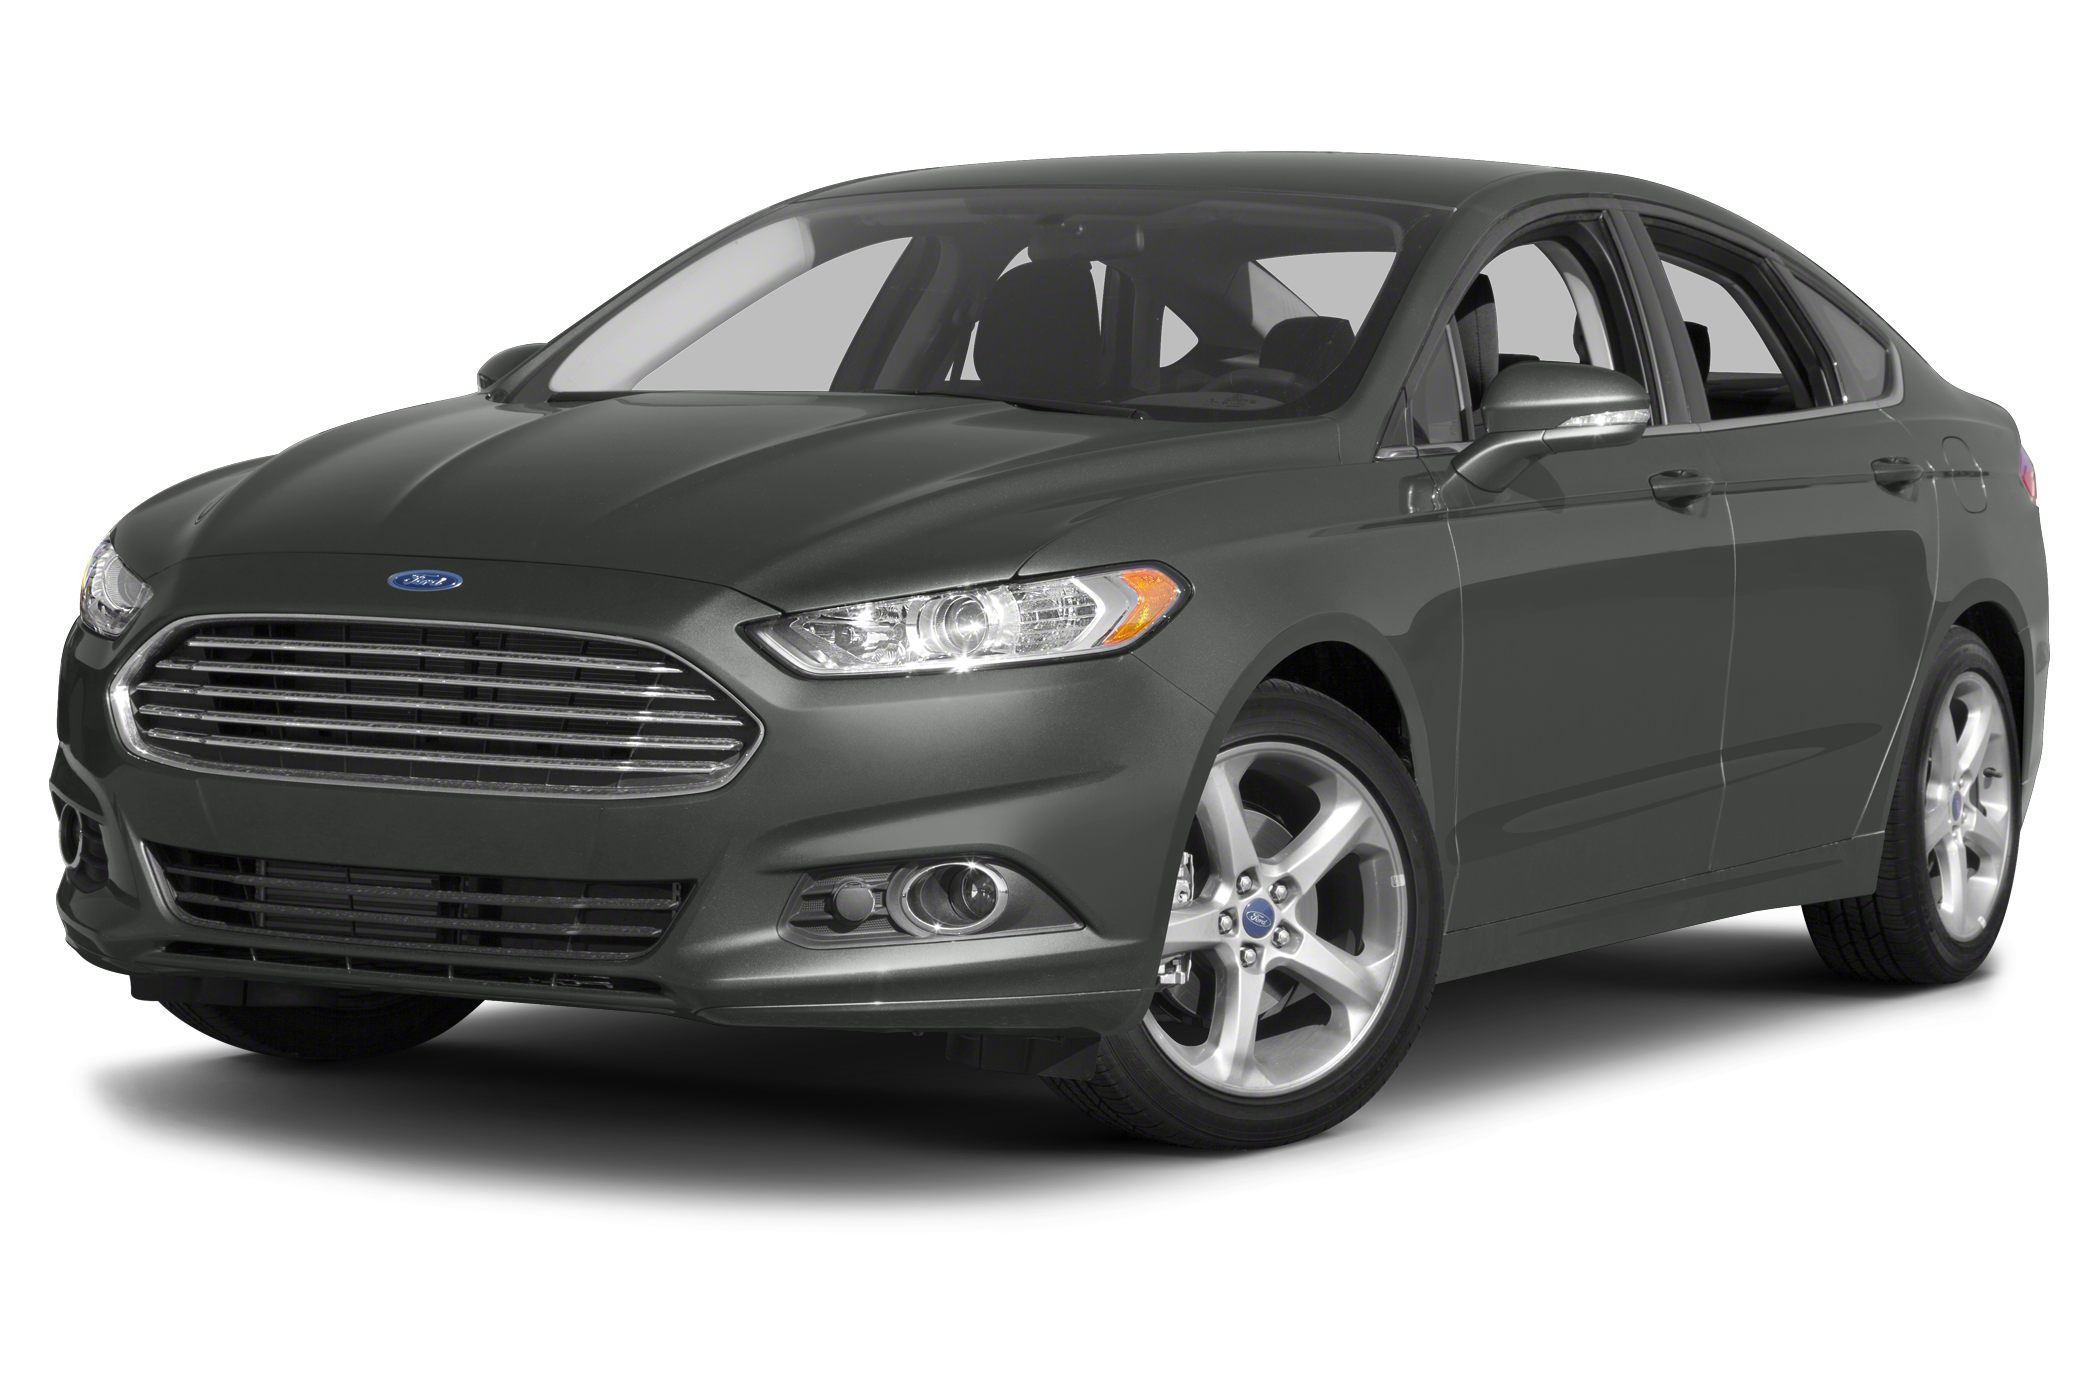 2014 Ford Fusion SE Sedan for sale in Claremont for $26,462 with 0 miles